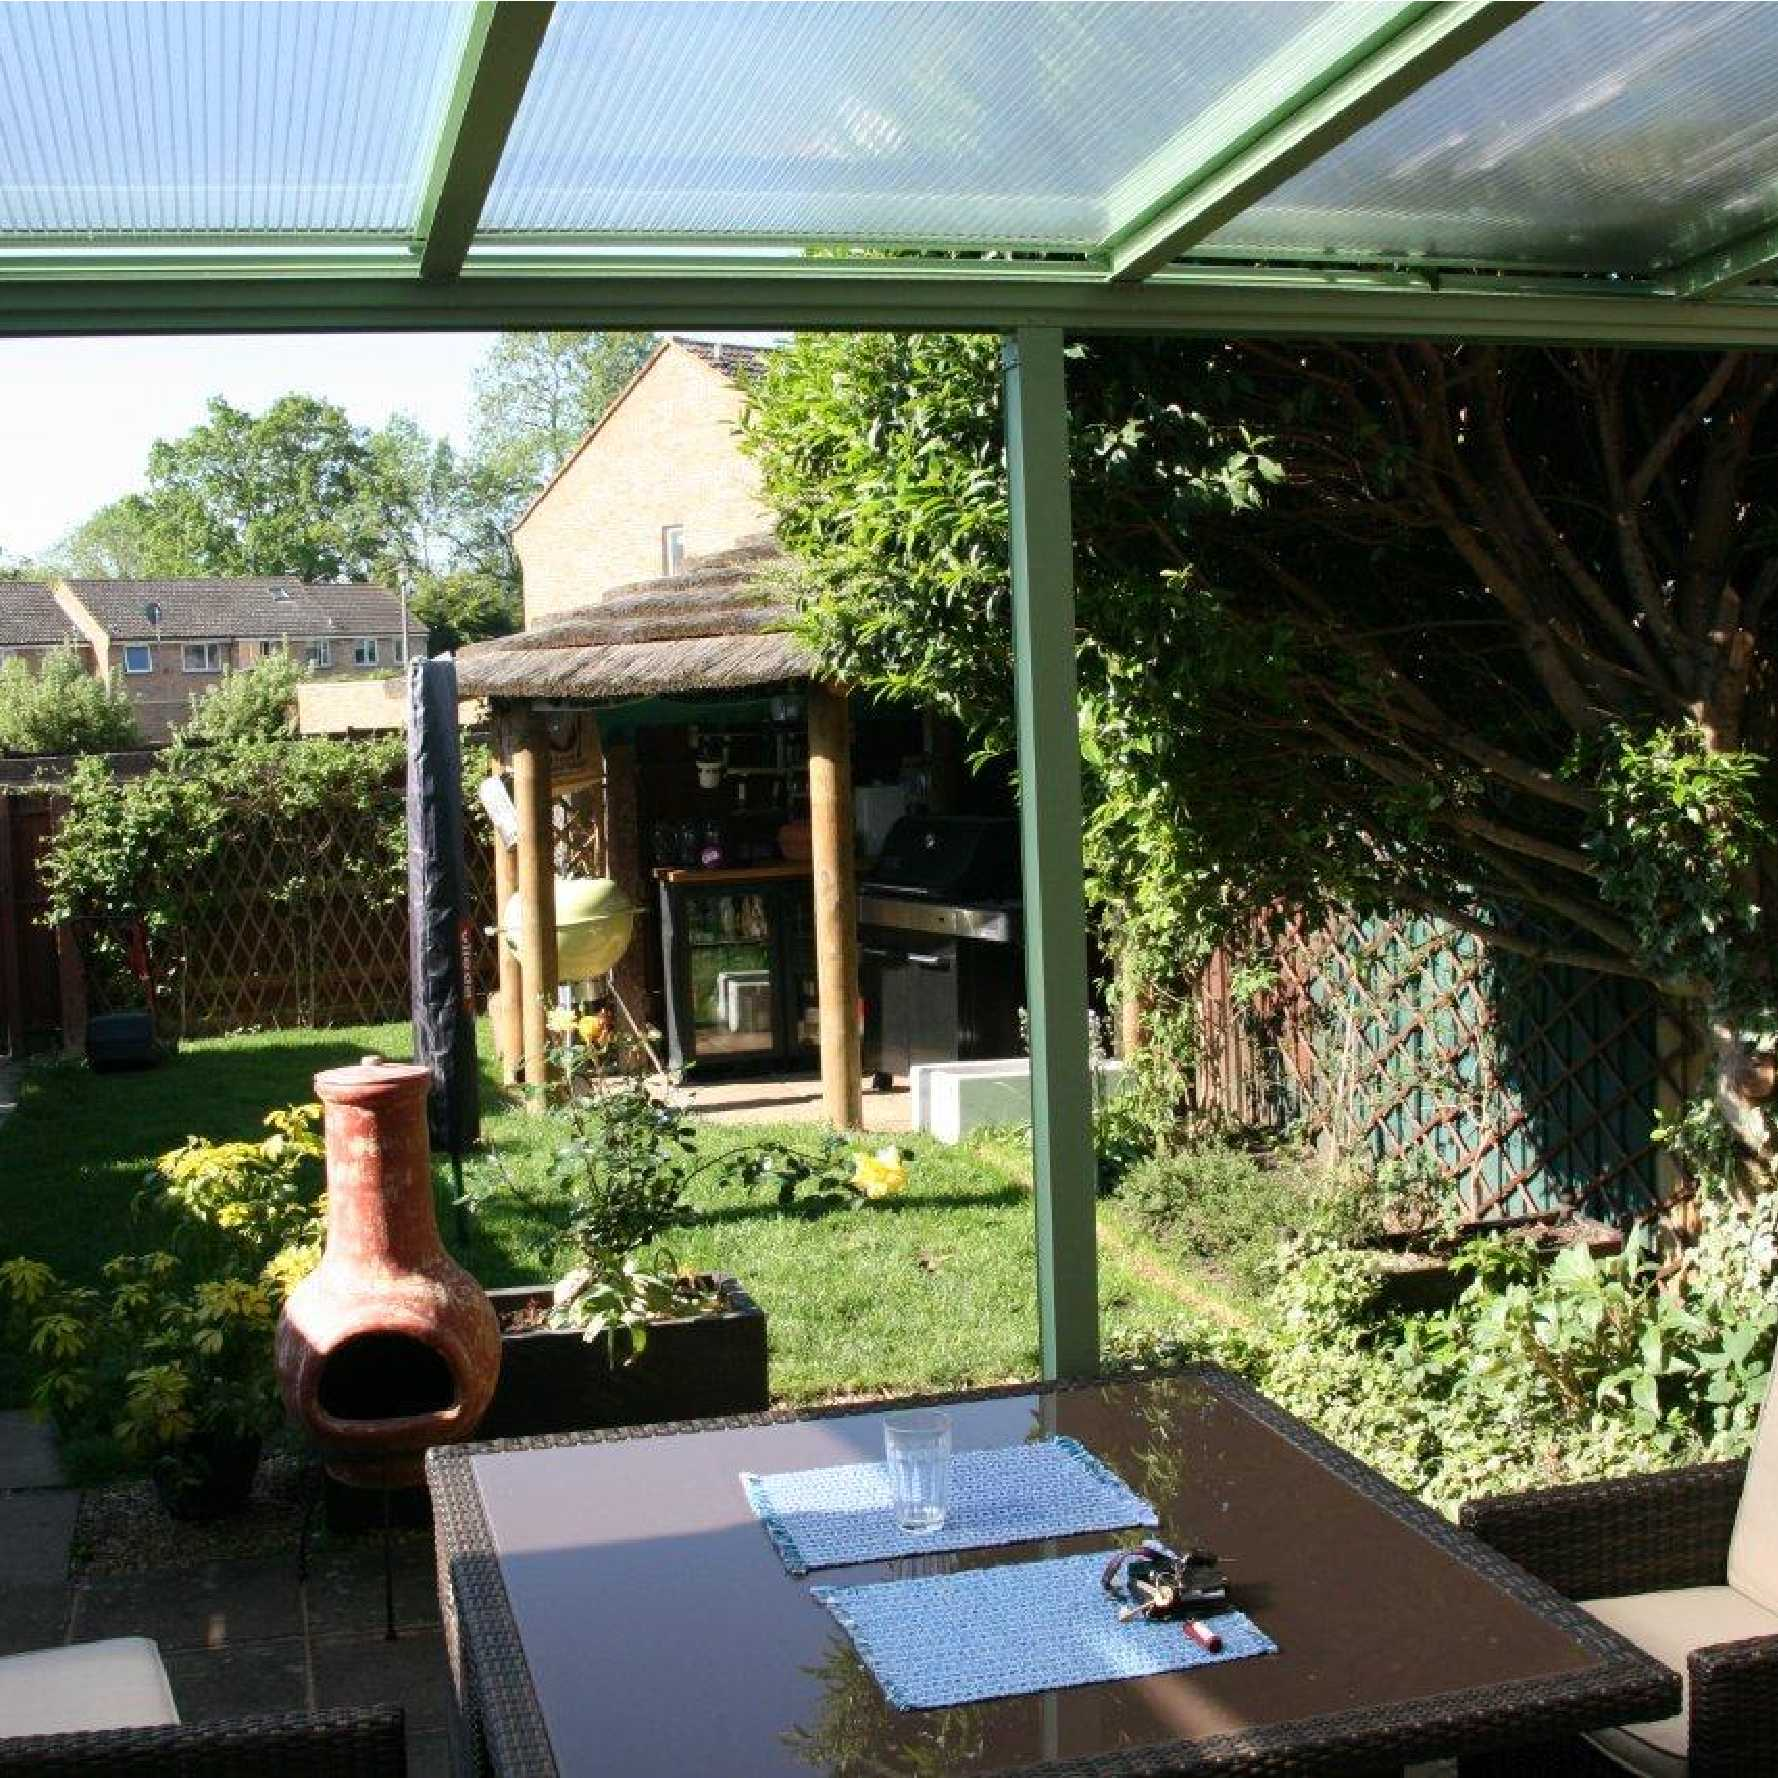 Affordable Omega Smart Lean-To Canopy with 16mm Polycarbonate Glazing - 7.4m (W) x 1.5m (P), (4) Supporting Posts